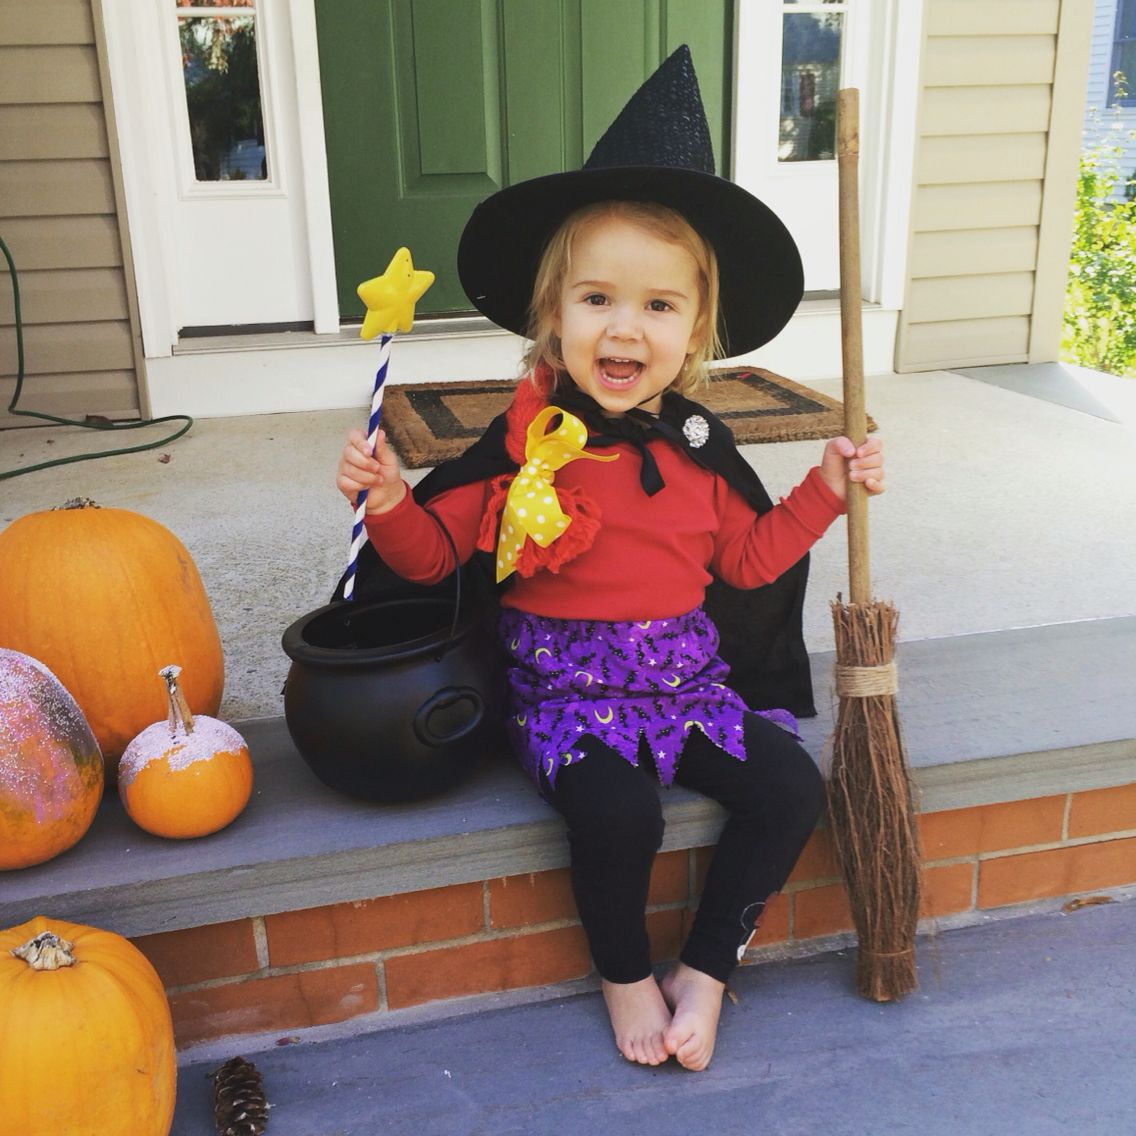 Witch costume from Room on the Broom! #Halloween  sc 1 st  Pinterest & Witch costume from Room on the Broom! #Halloween | My little girls ...